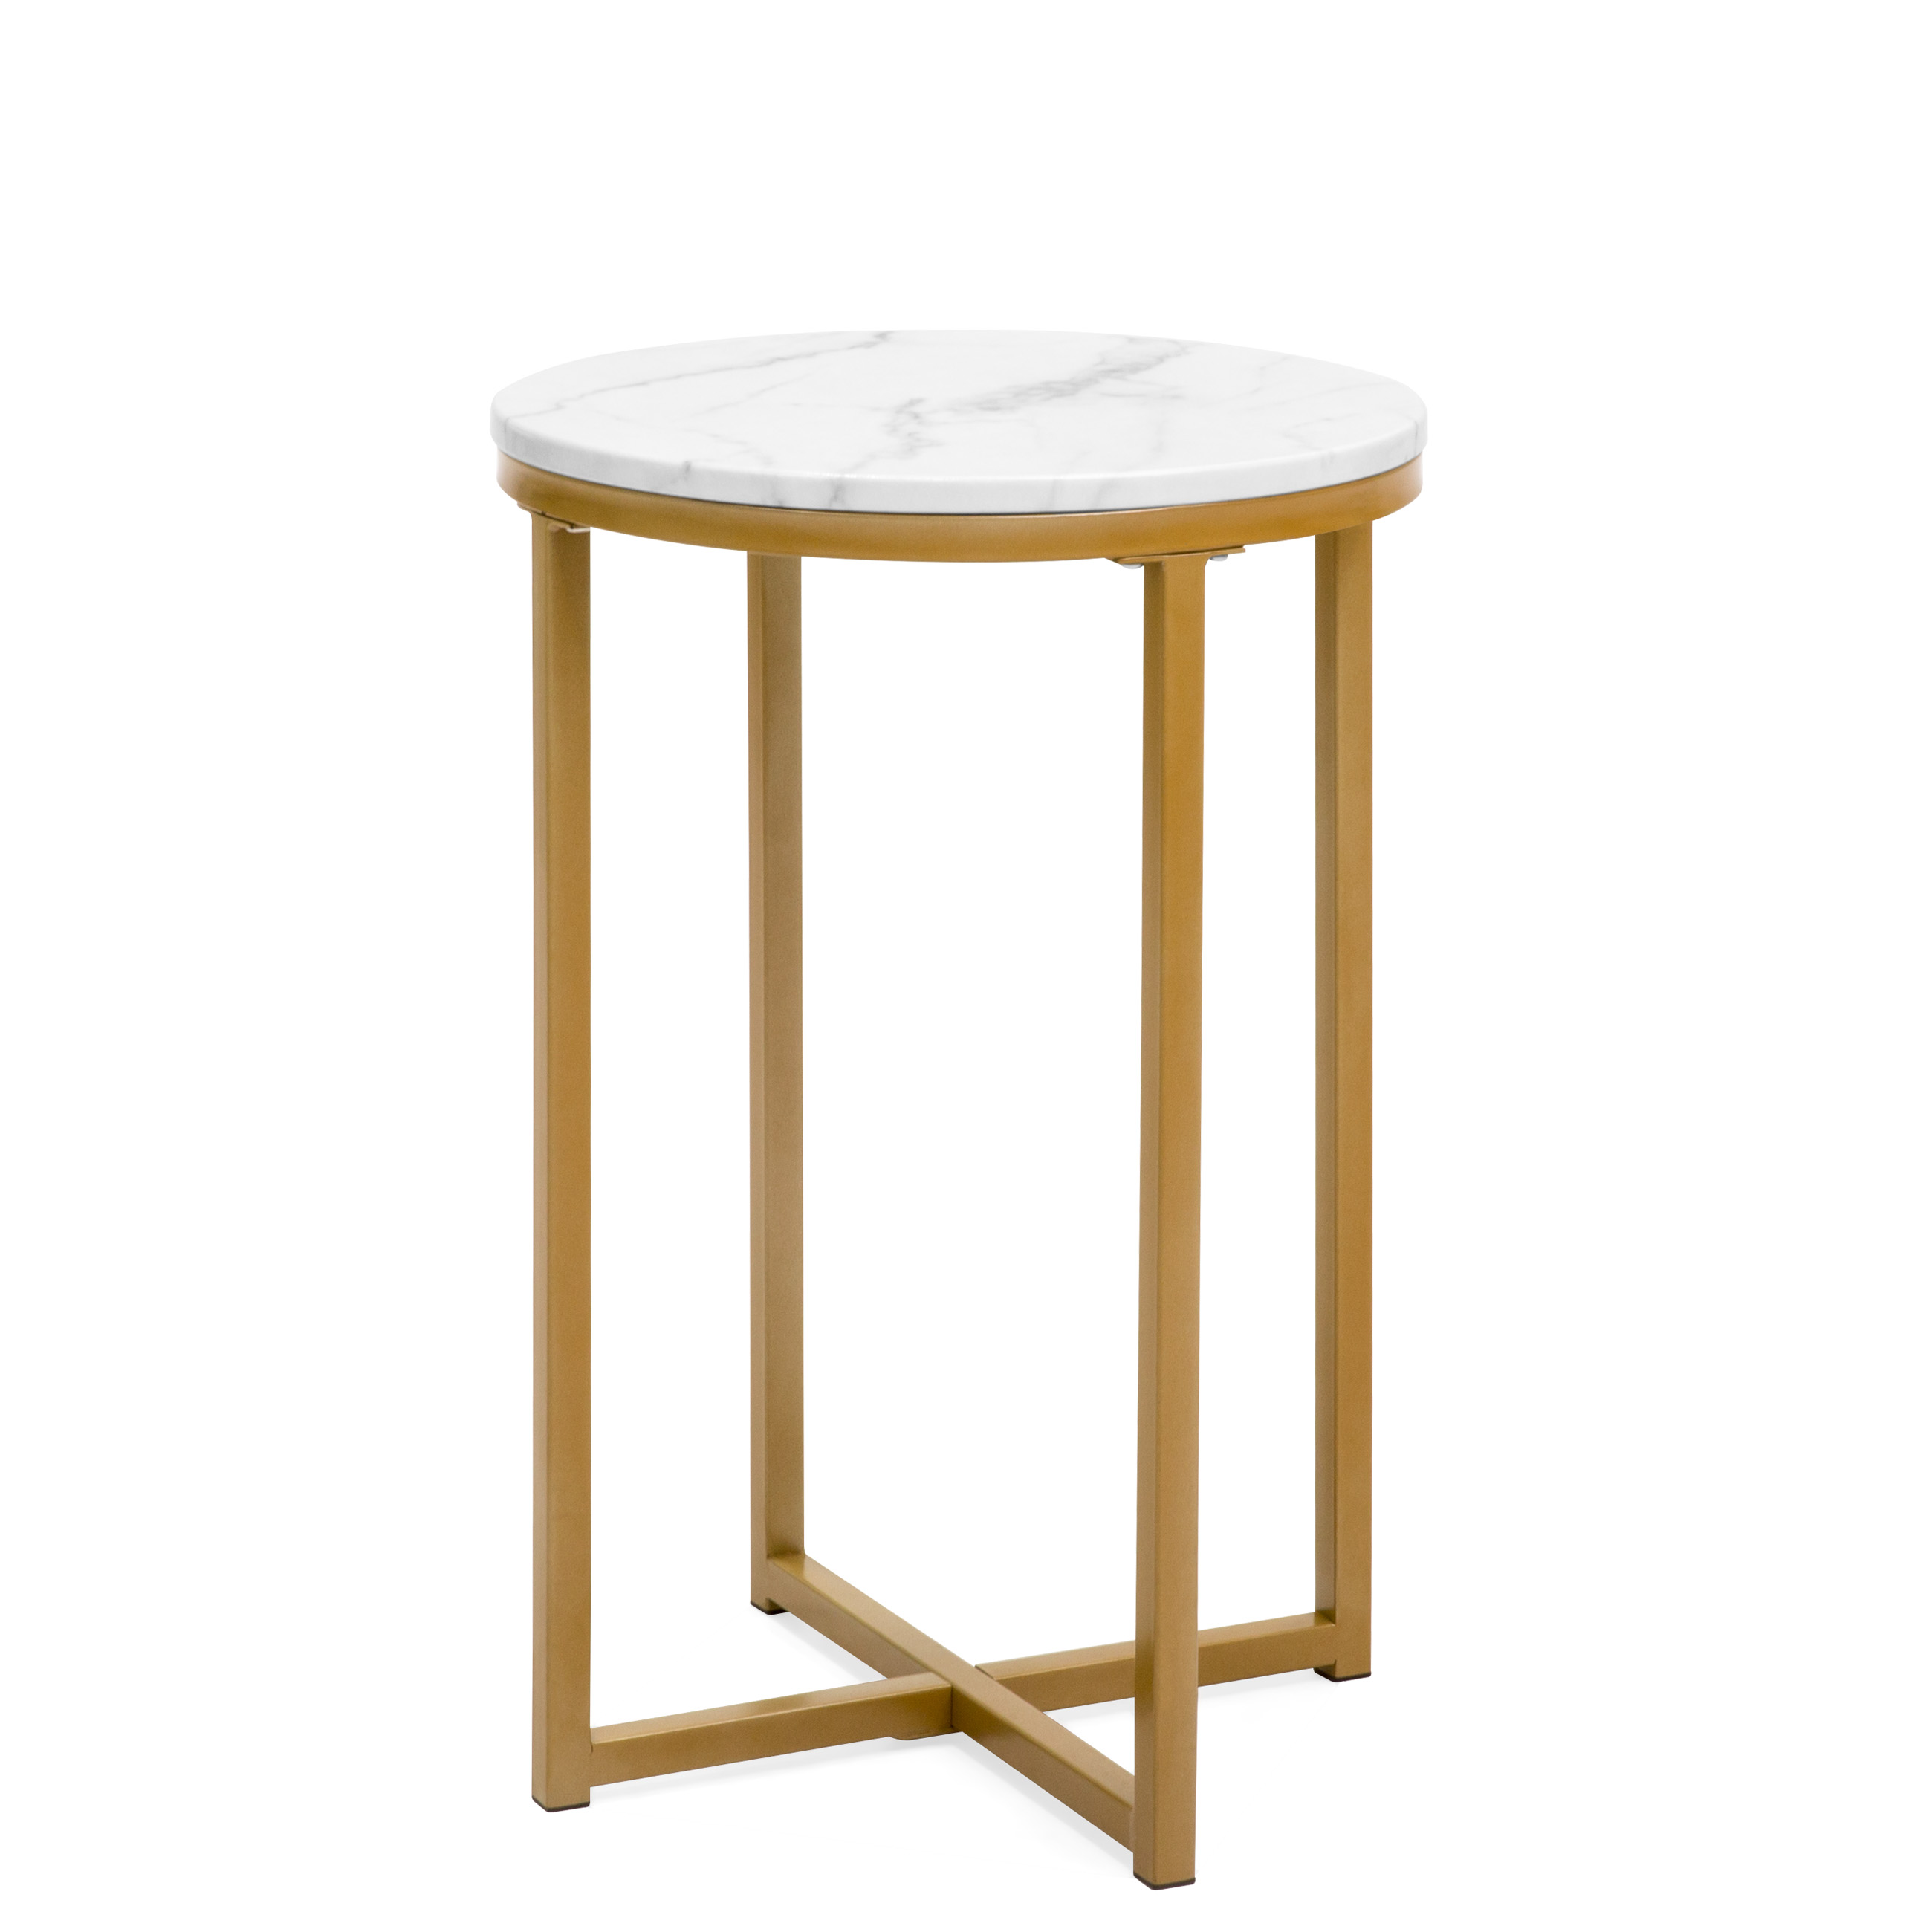 best choice products modern living room round side end accent gold table with marble top coffee nightstand metal frame faux white little lamp bedside cabinets venetian mirrored